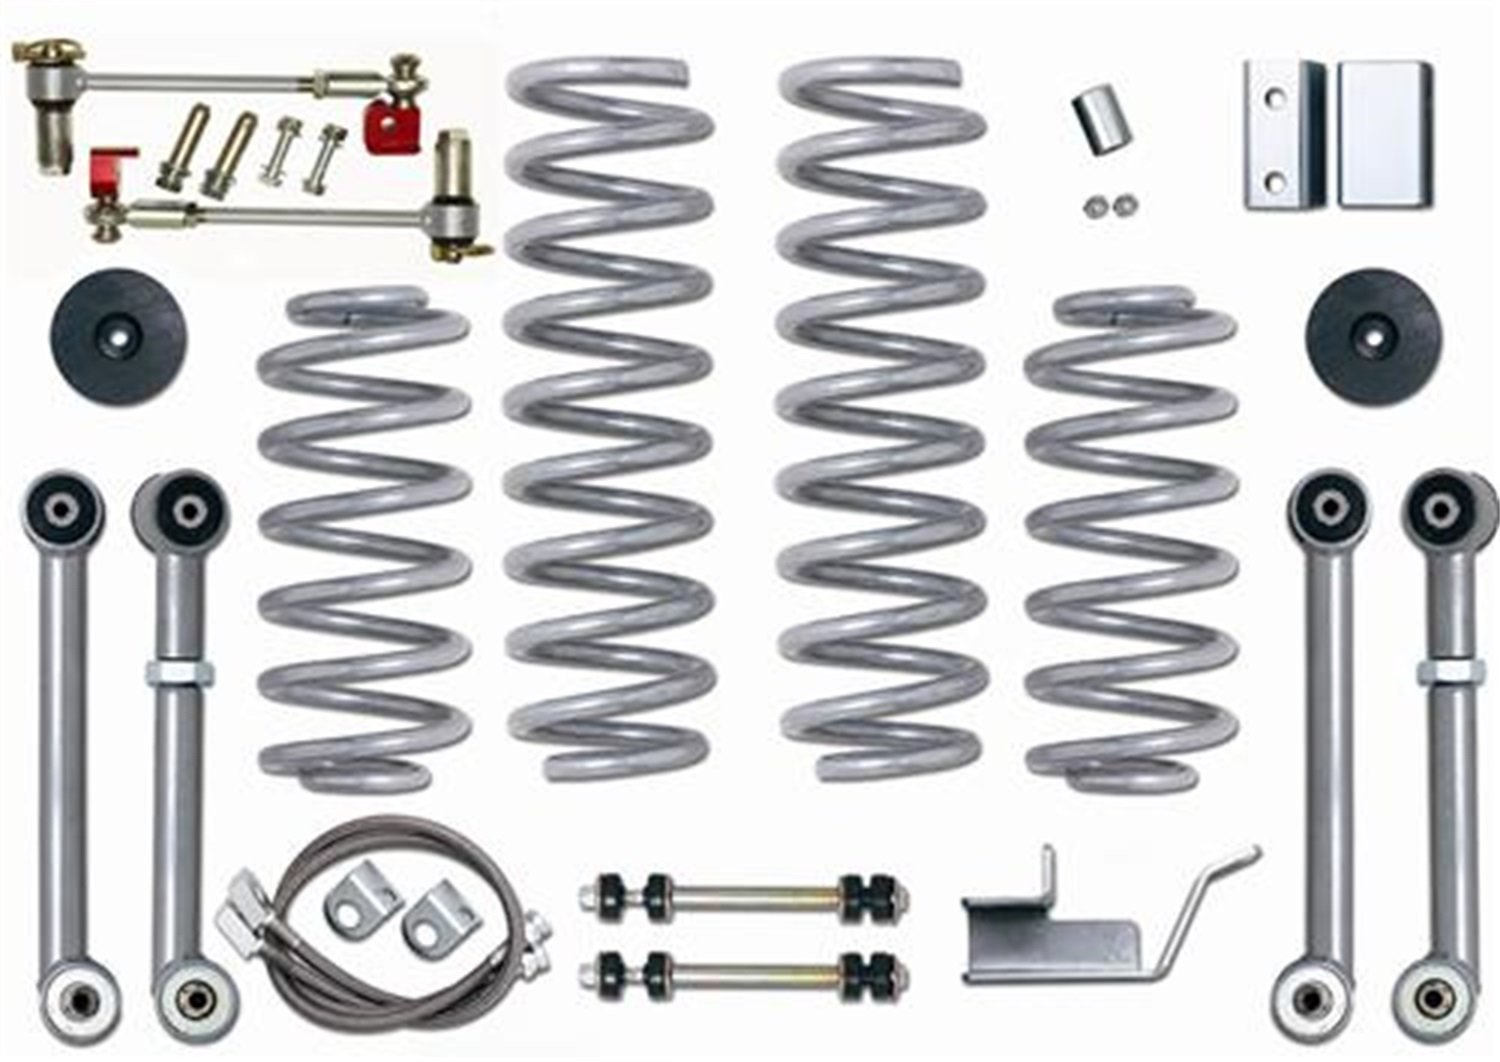 "3.5"" Super-Flex Short Arm Lift Kit Rubicon Express"